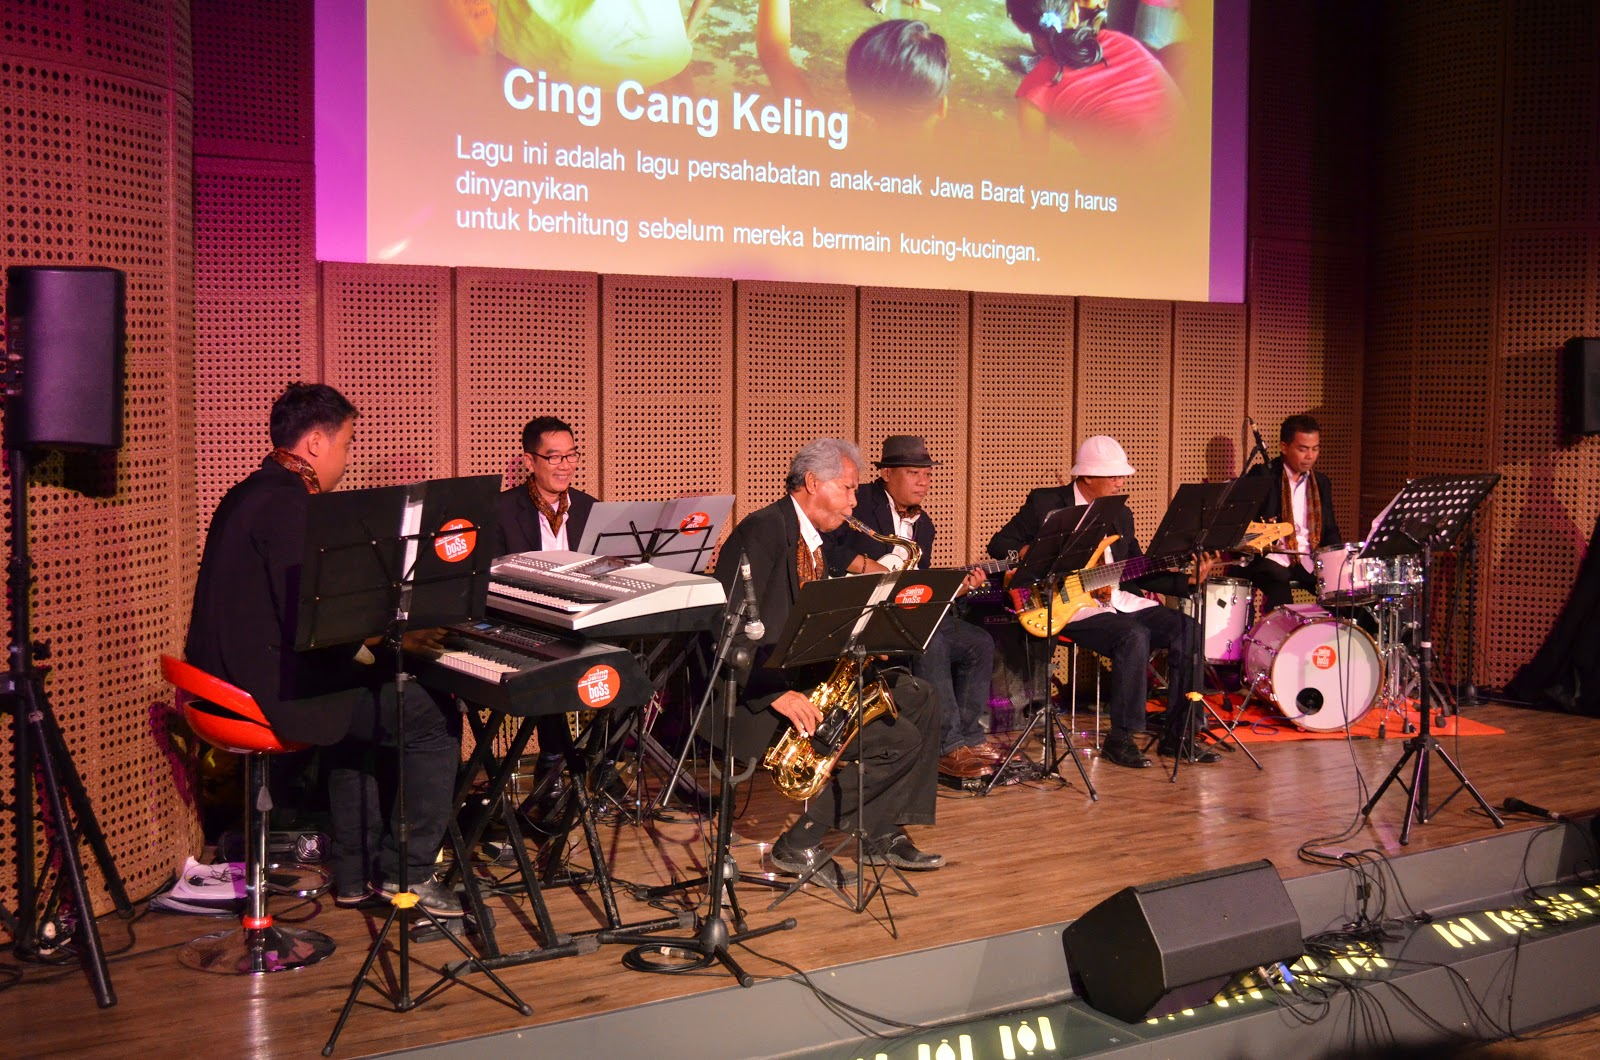 Swing boss jazz band